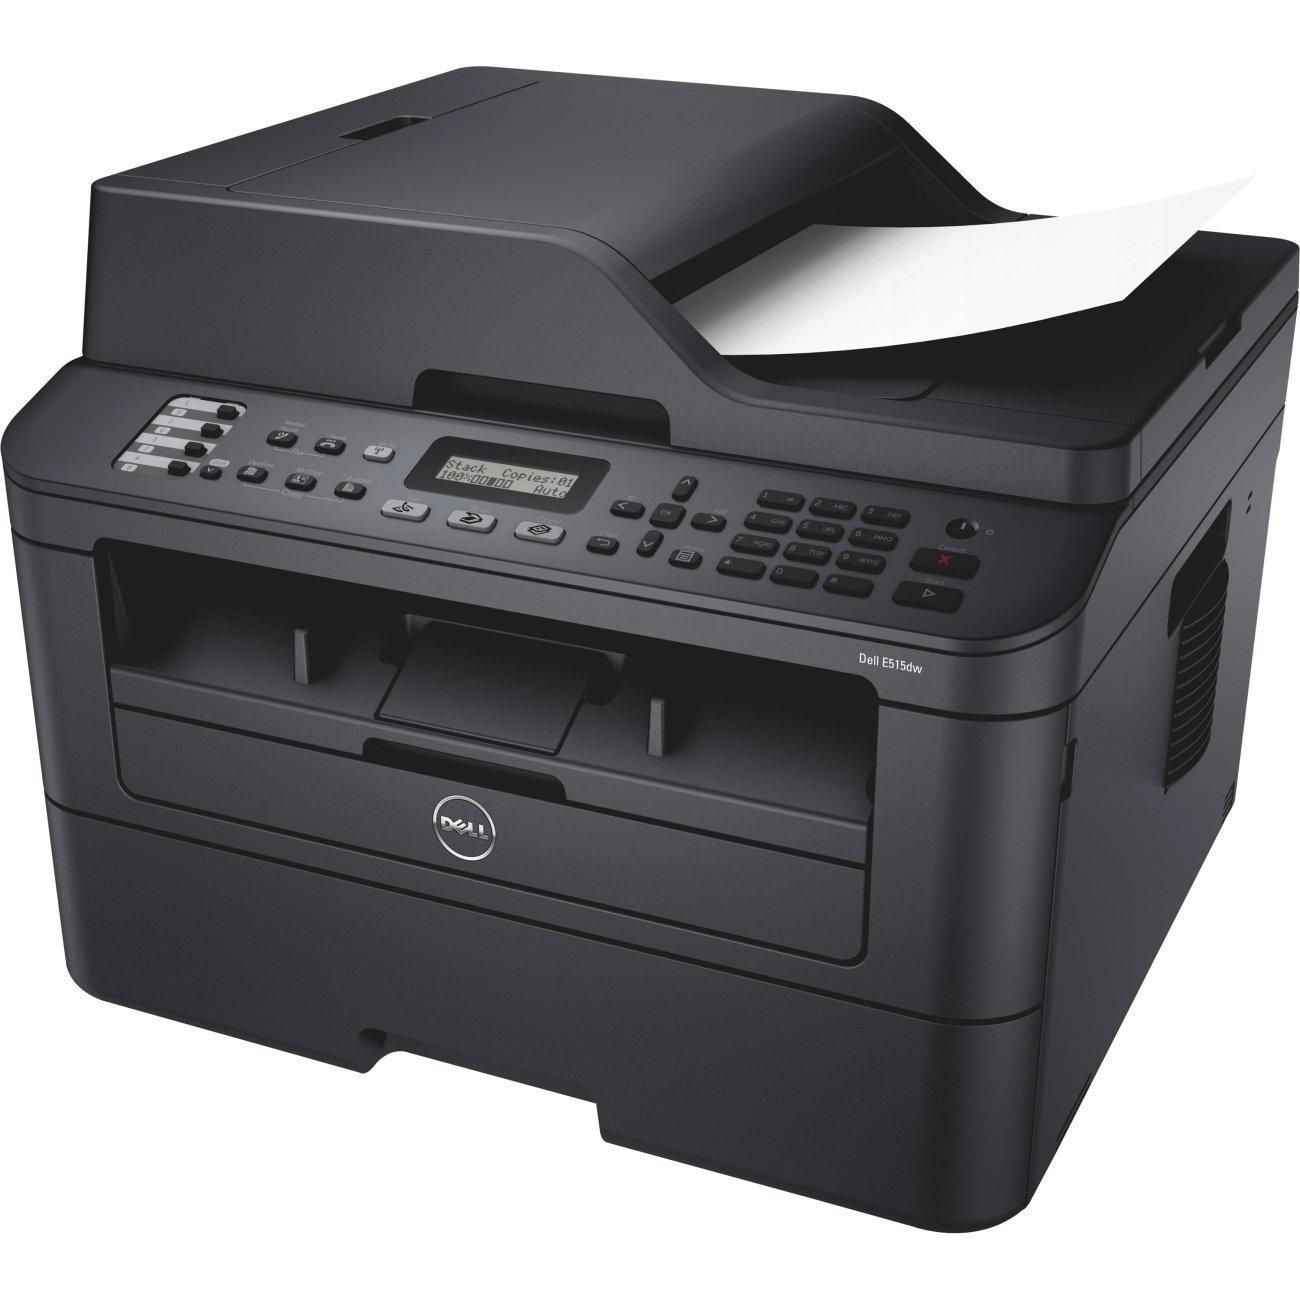 Dell Multifunction Printer E514dw